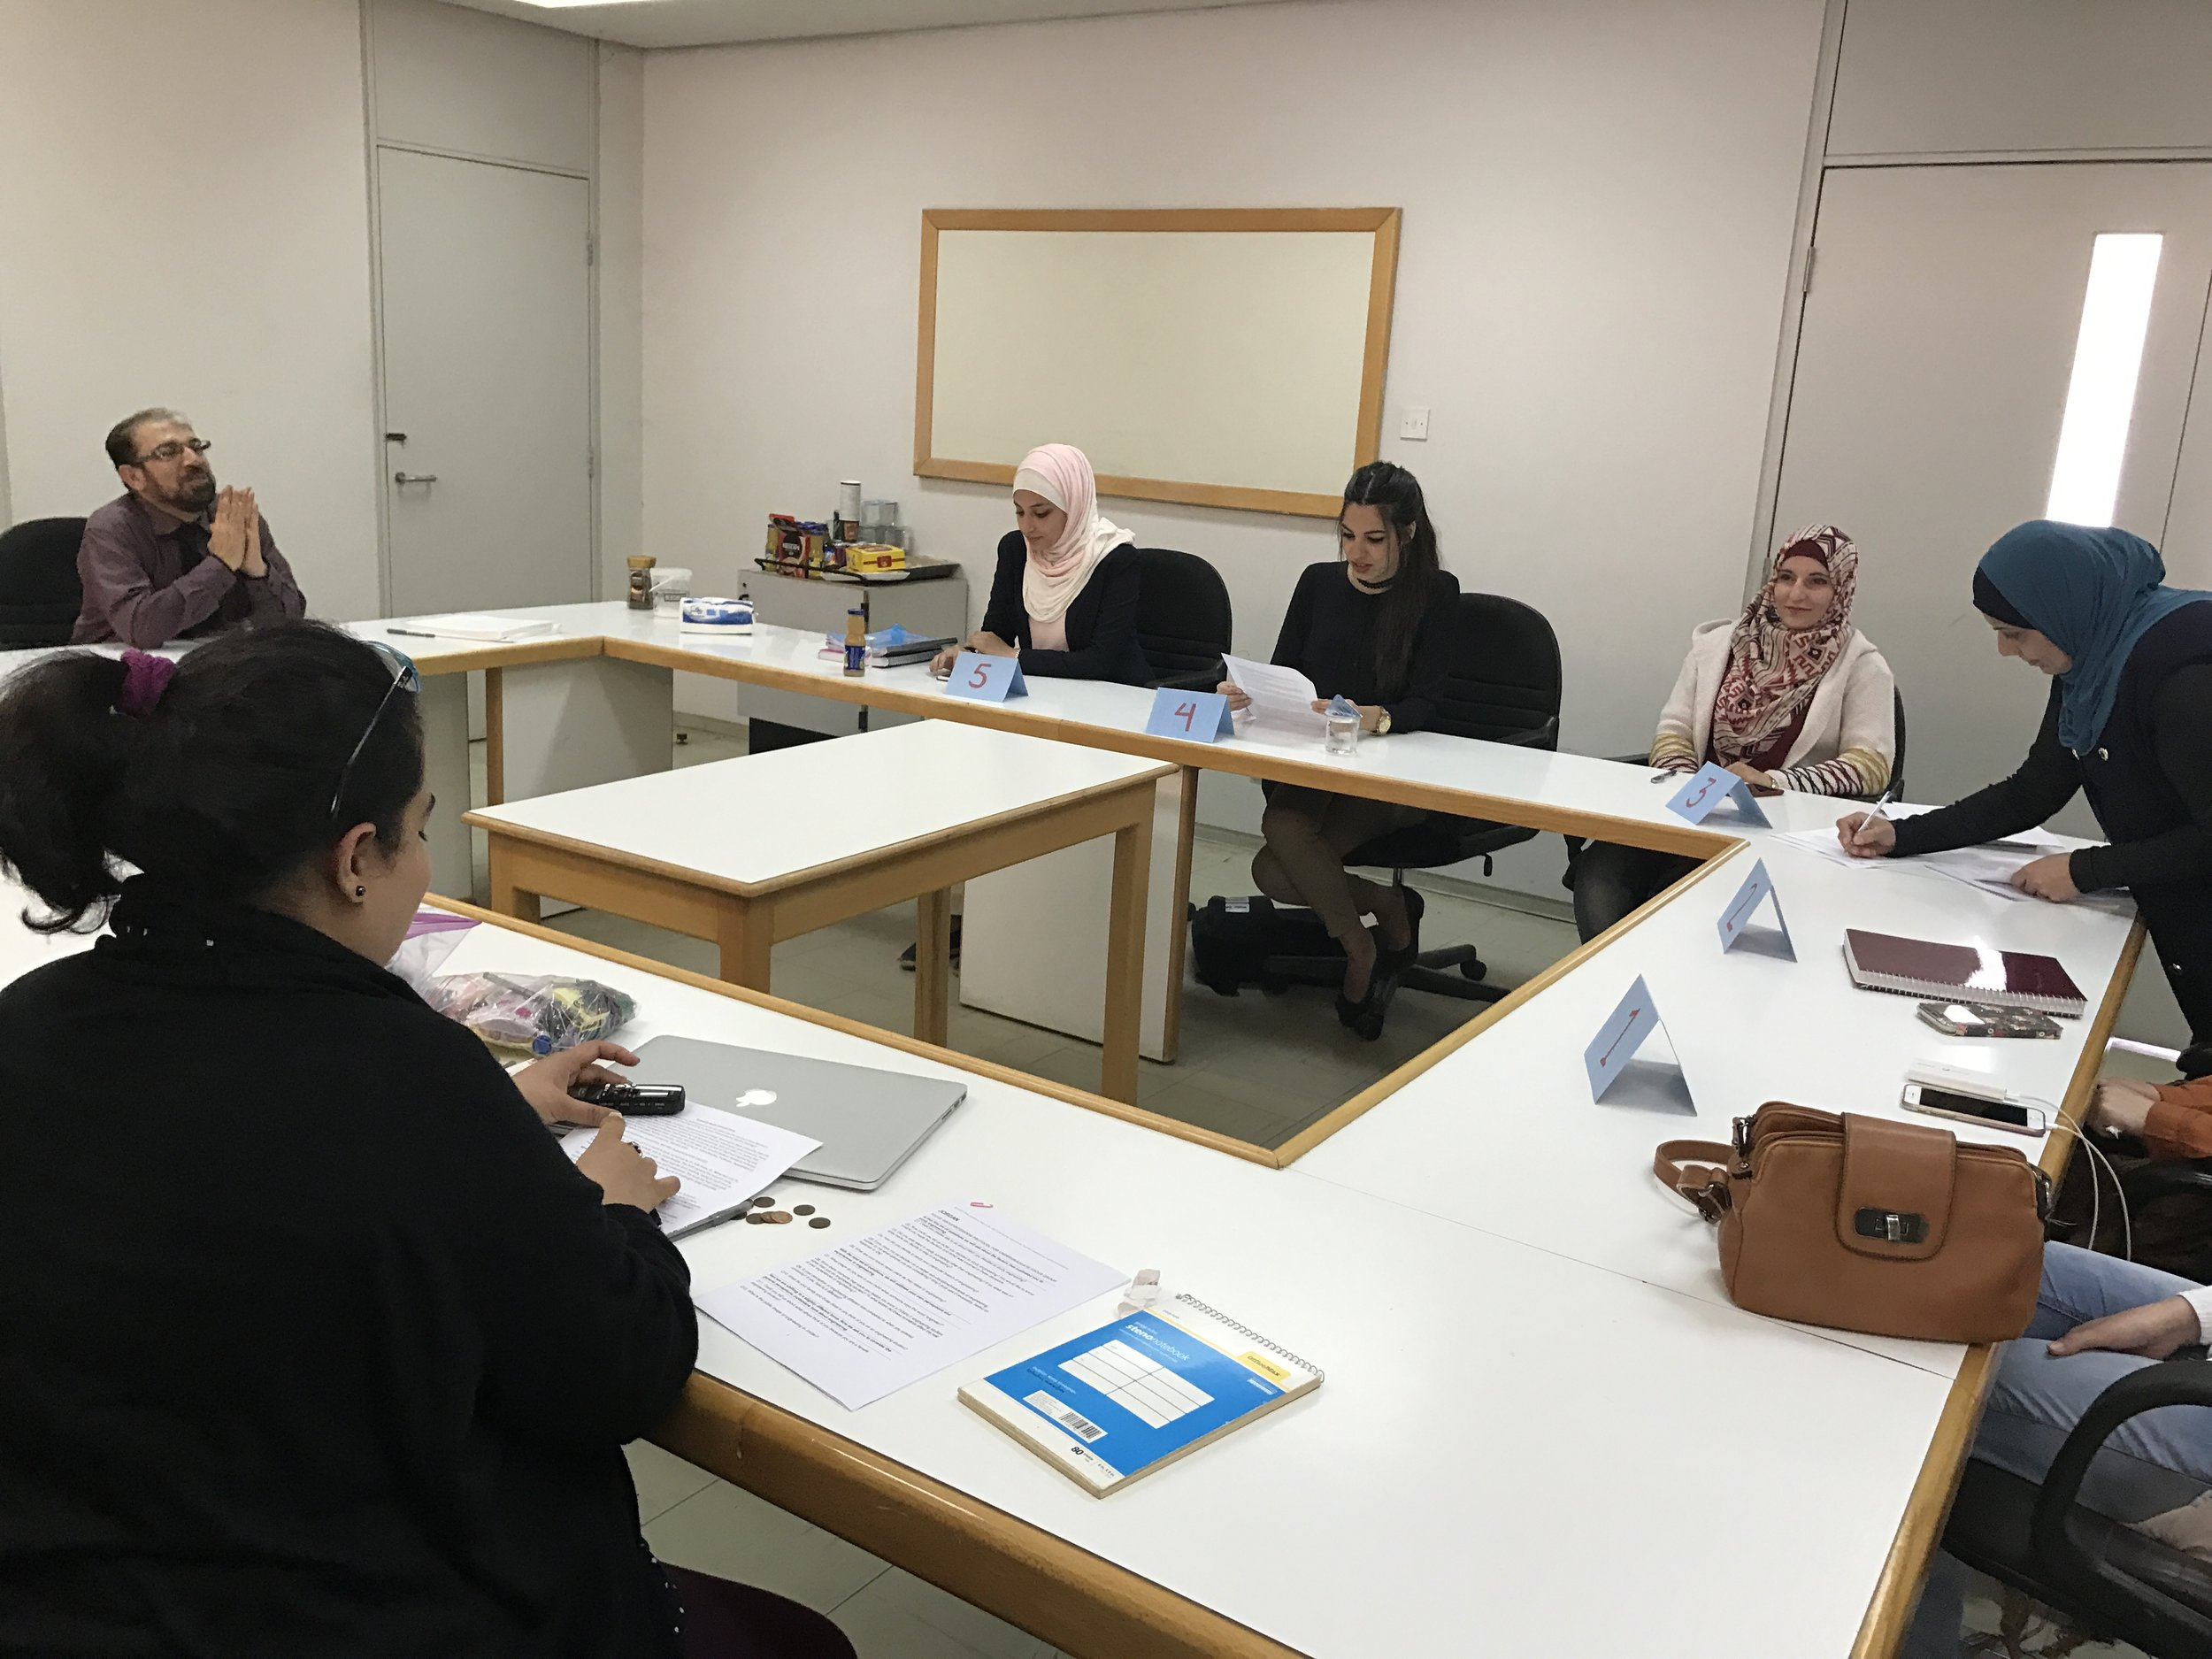 Our first focus group with undergraduate engineering students at Jordan University of Science and Technology (JUST).